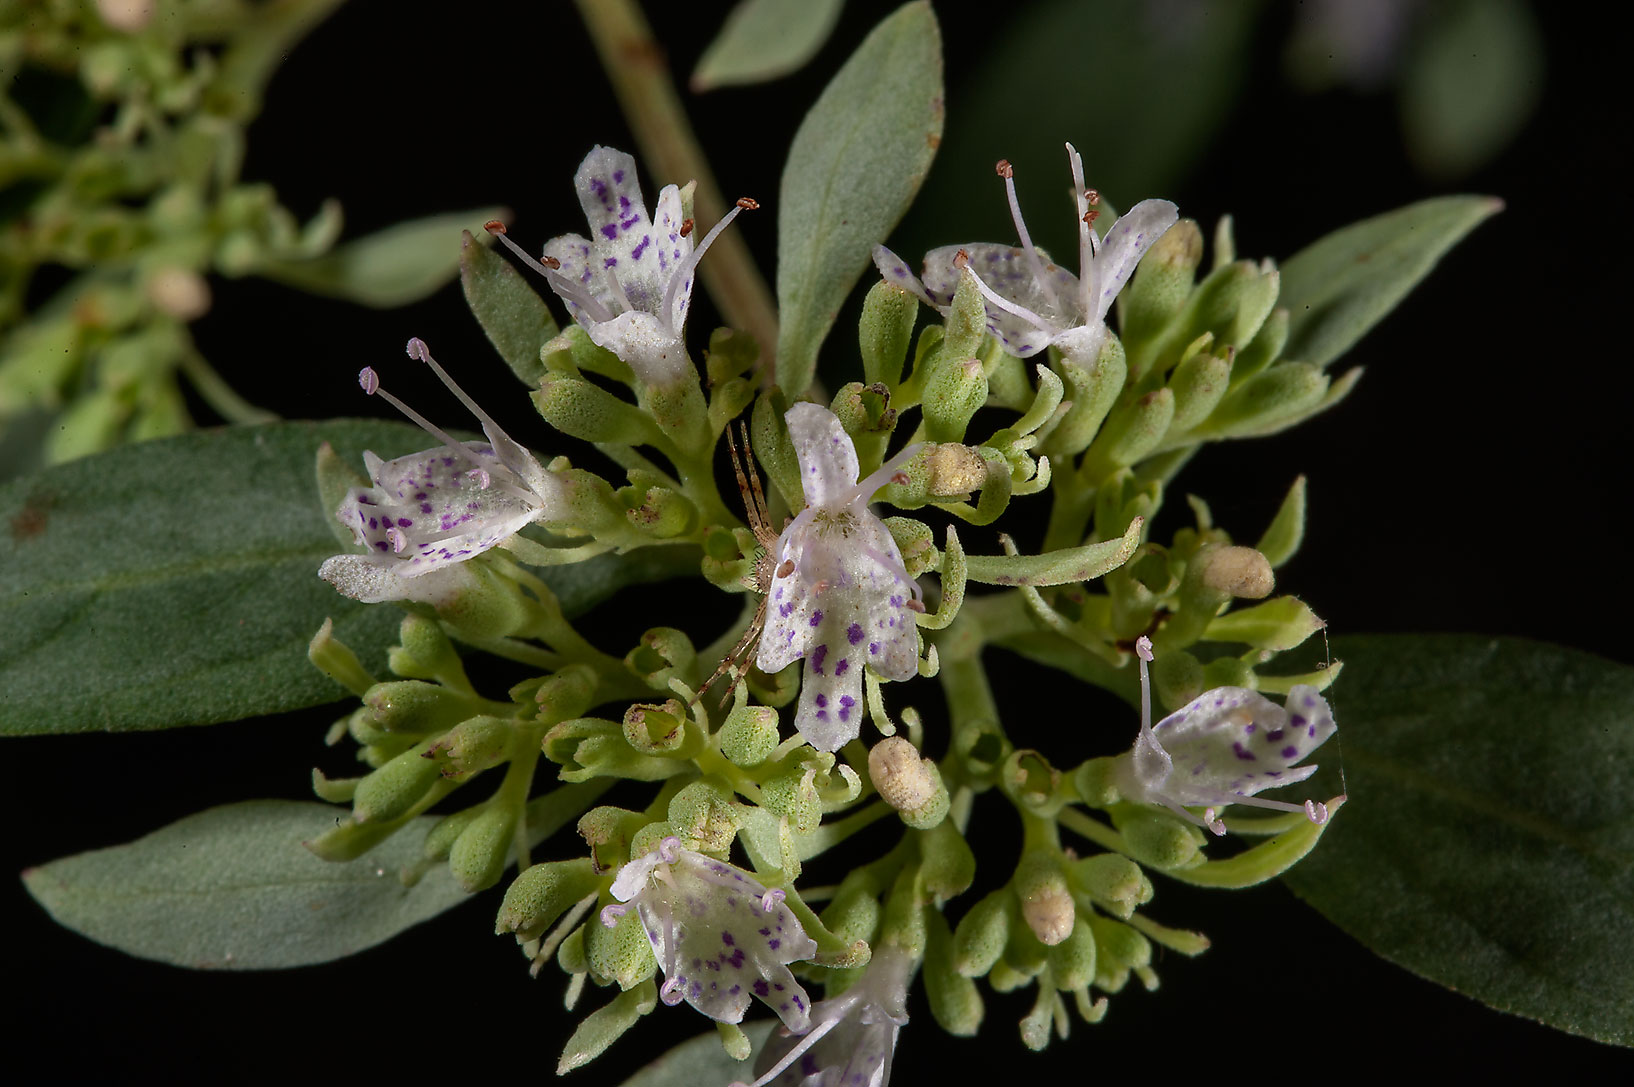 Mountain mint (Pycnanthemum) on Kirby Trail in...National Preserve. Kountze, Texas